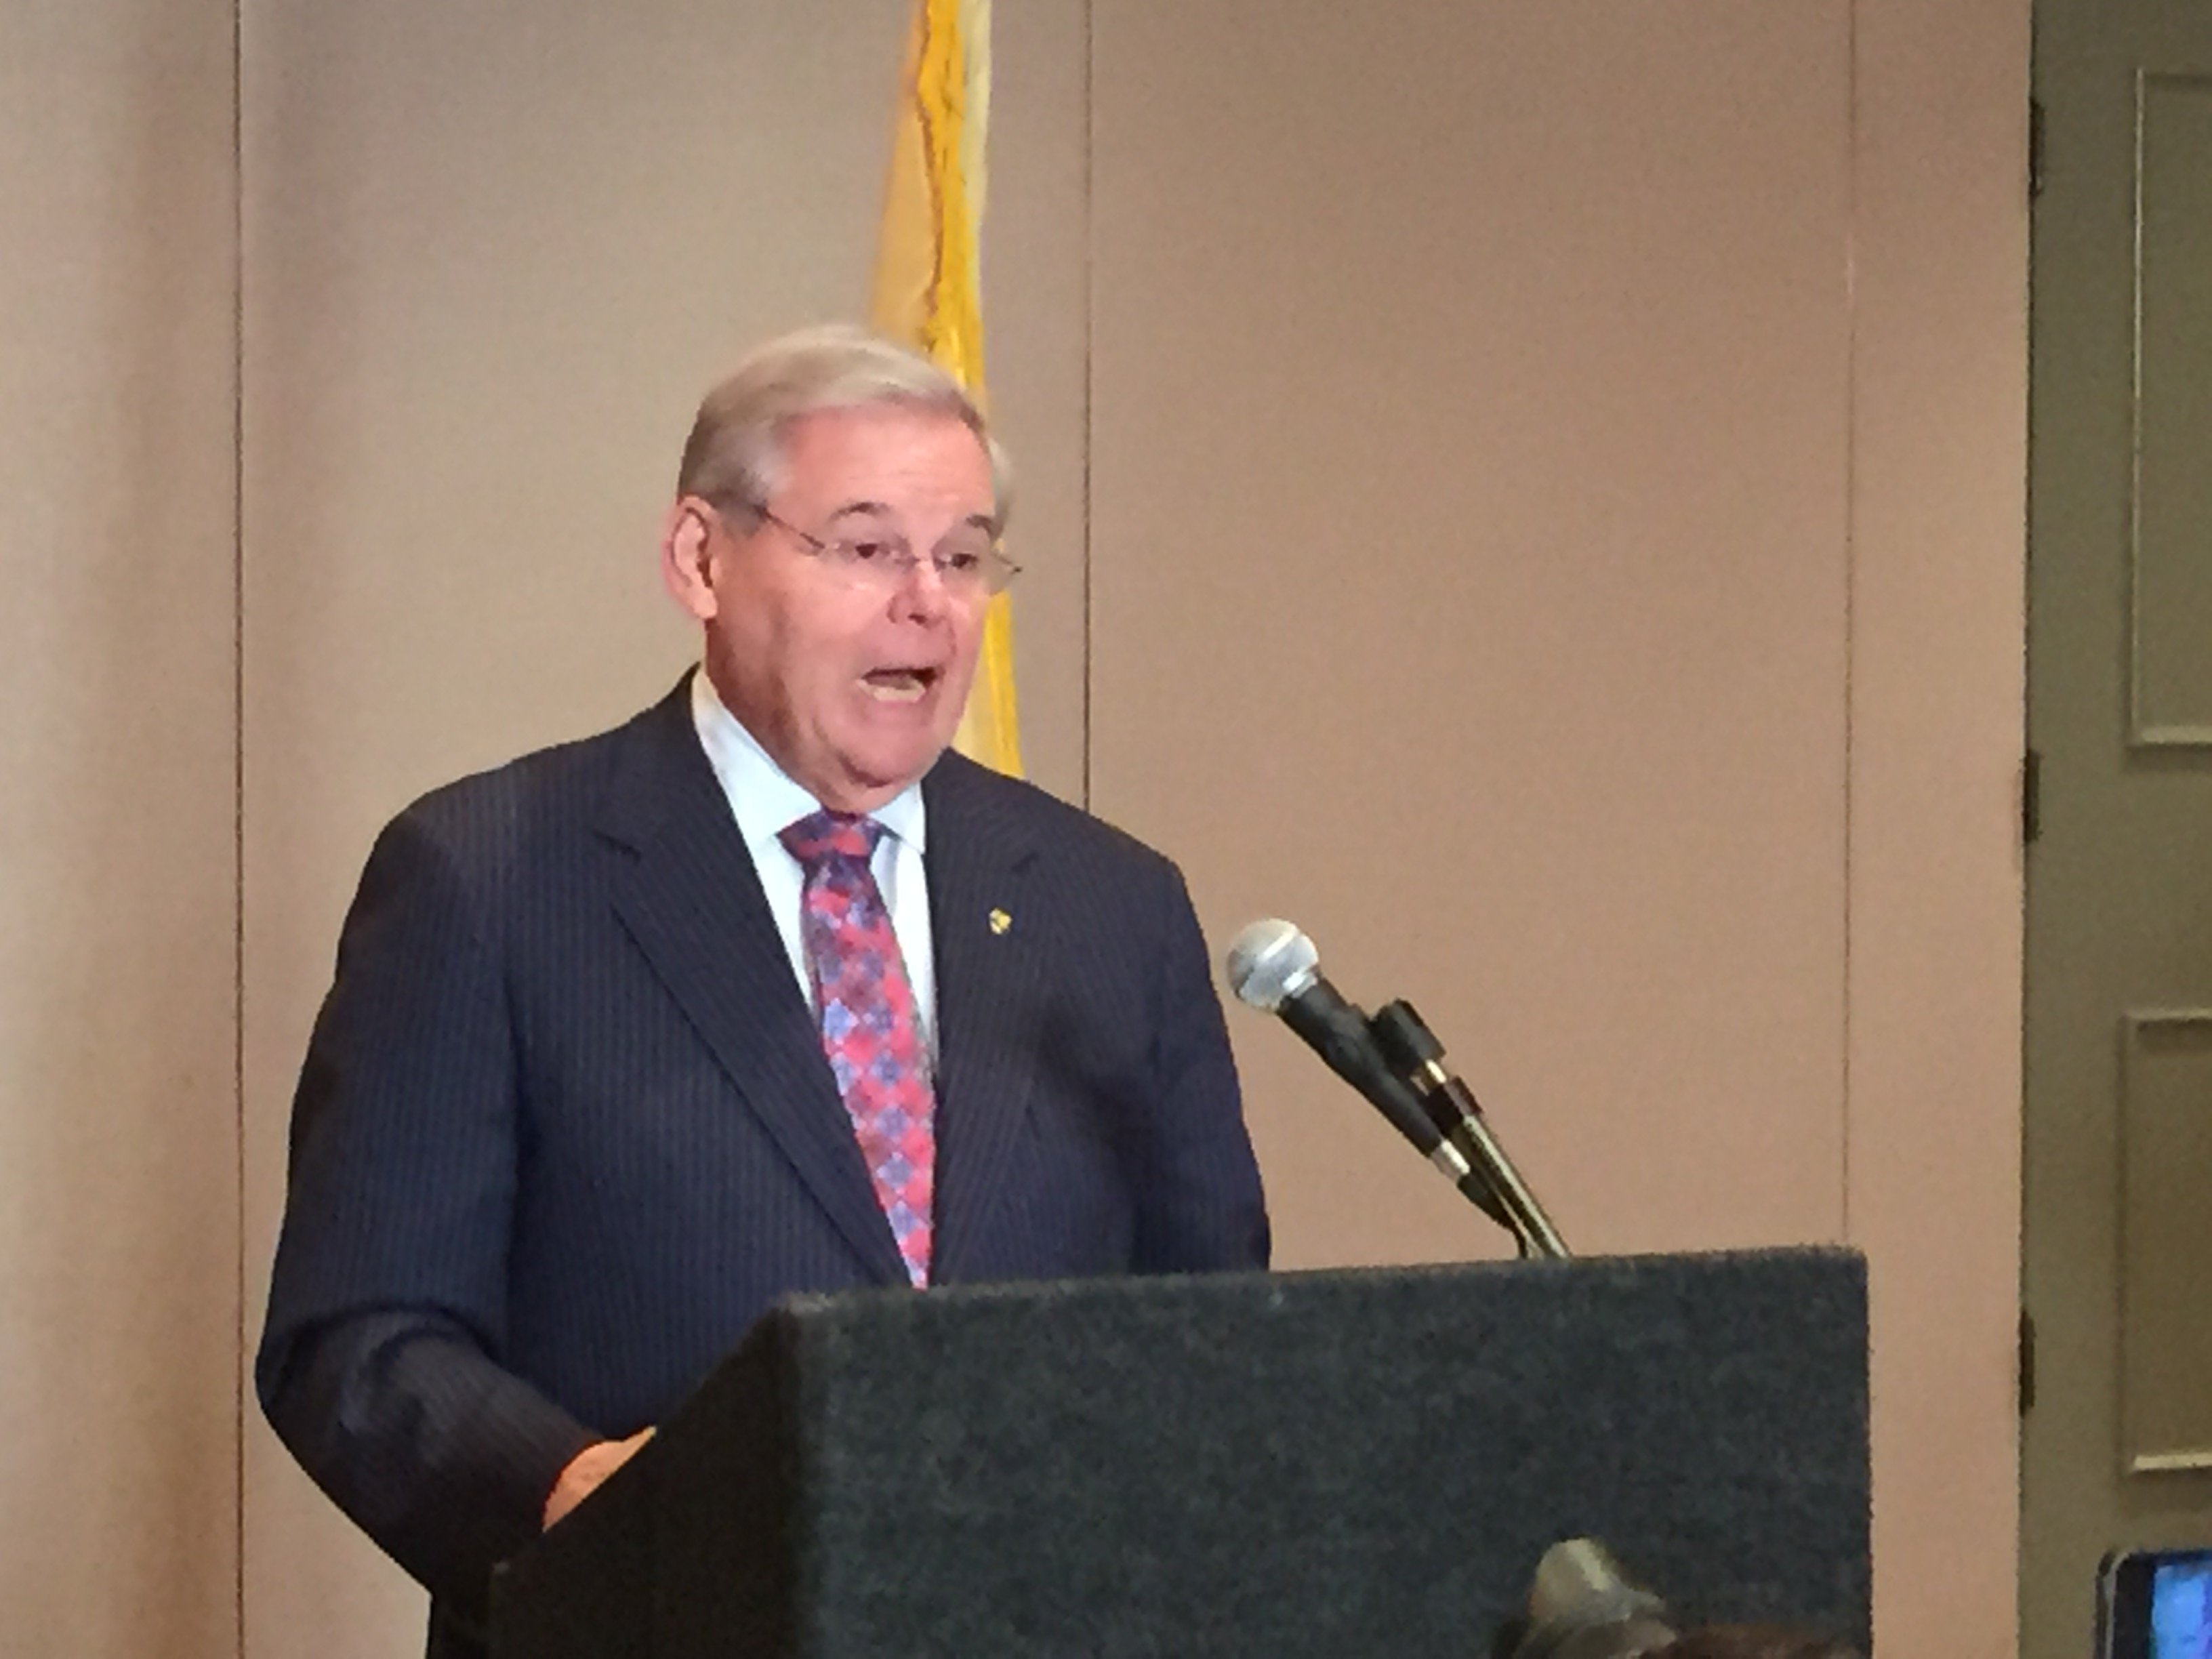 Media Won't Talk About Democratic Sen. Bob Menendez's Corruption Trial